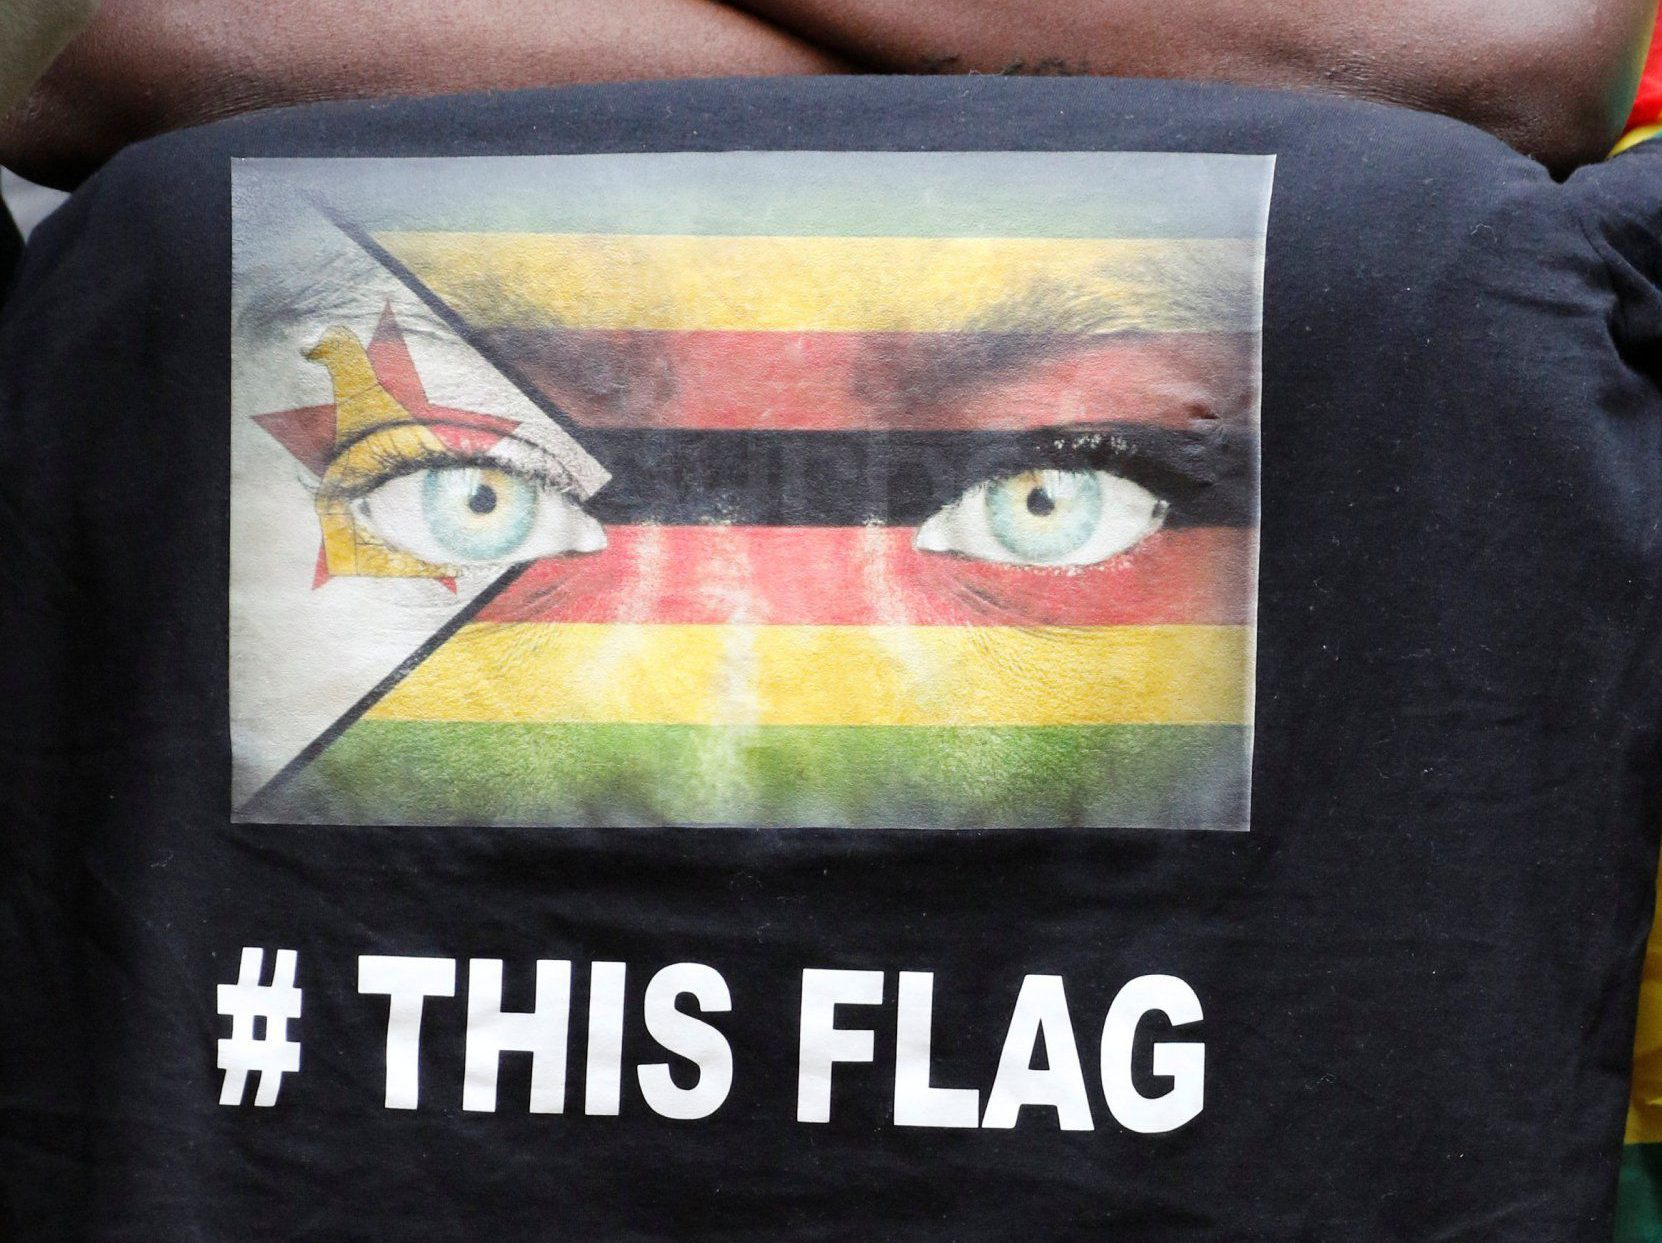 A supporter of Zimbabwean Pastor Evan Mawarire's displays t-shirt with a flag as he sits outside the Harare Magistrates court during Mawarire's trial, July 13, 2016. REUTERS/Philimon Bulawayo